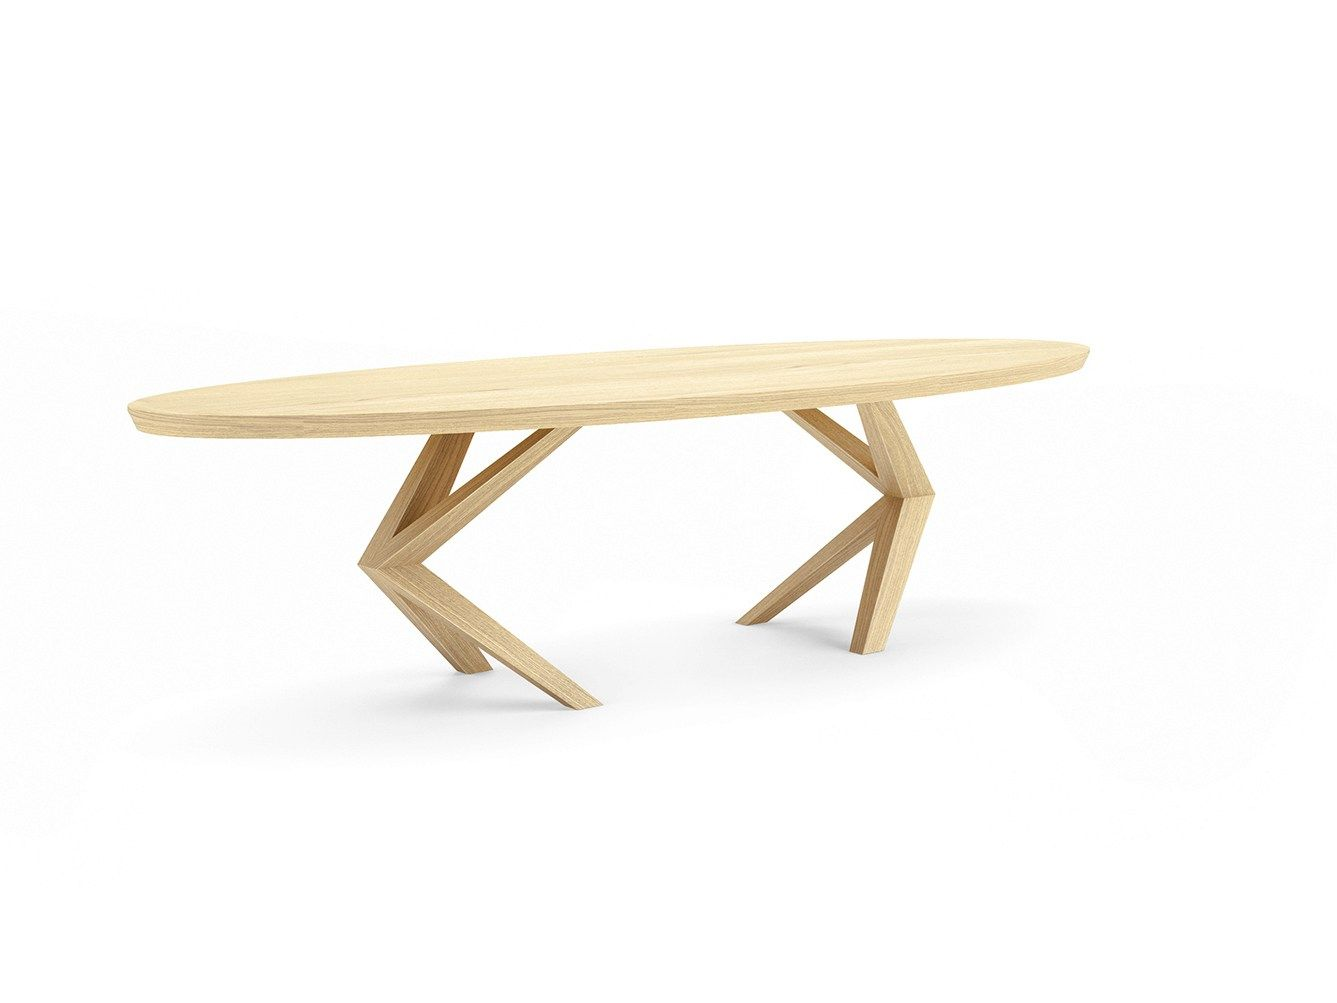 Arena #table | BELFAKTO: craftsmanship and passion for design featured at IMM Cologne 2015